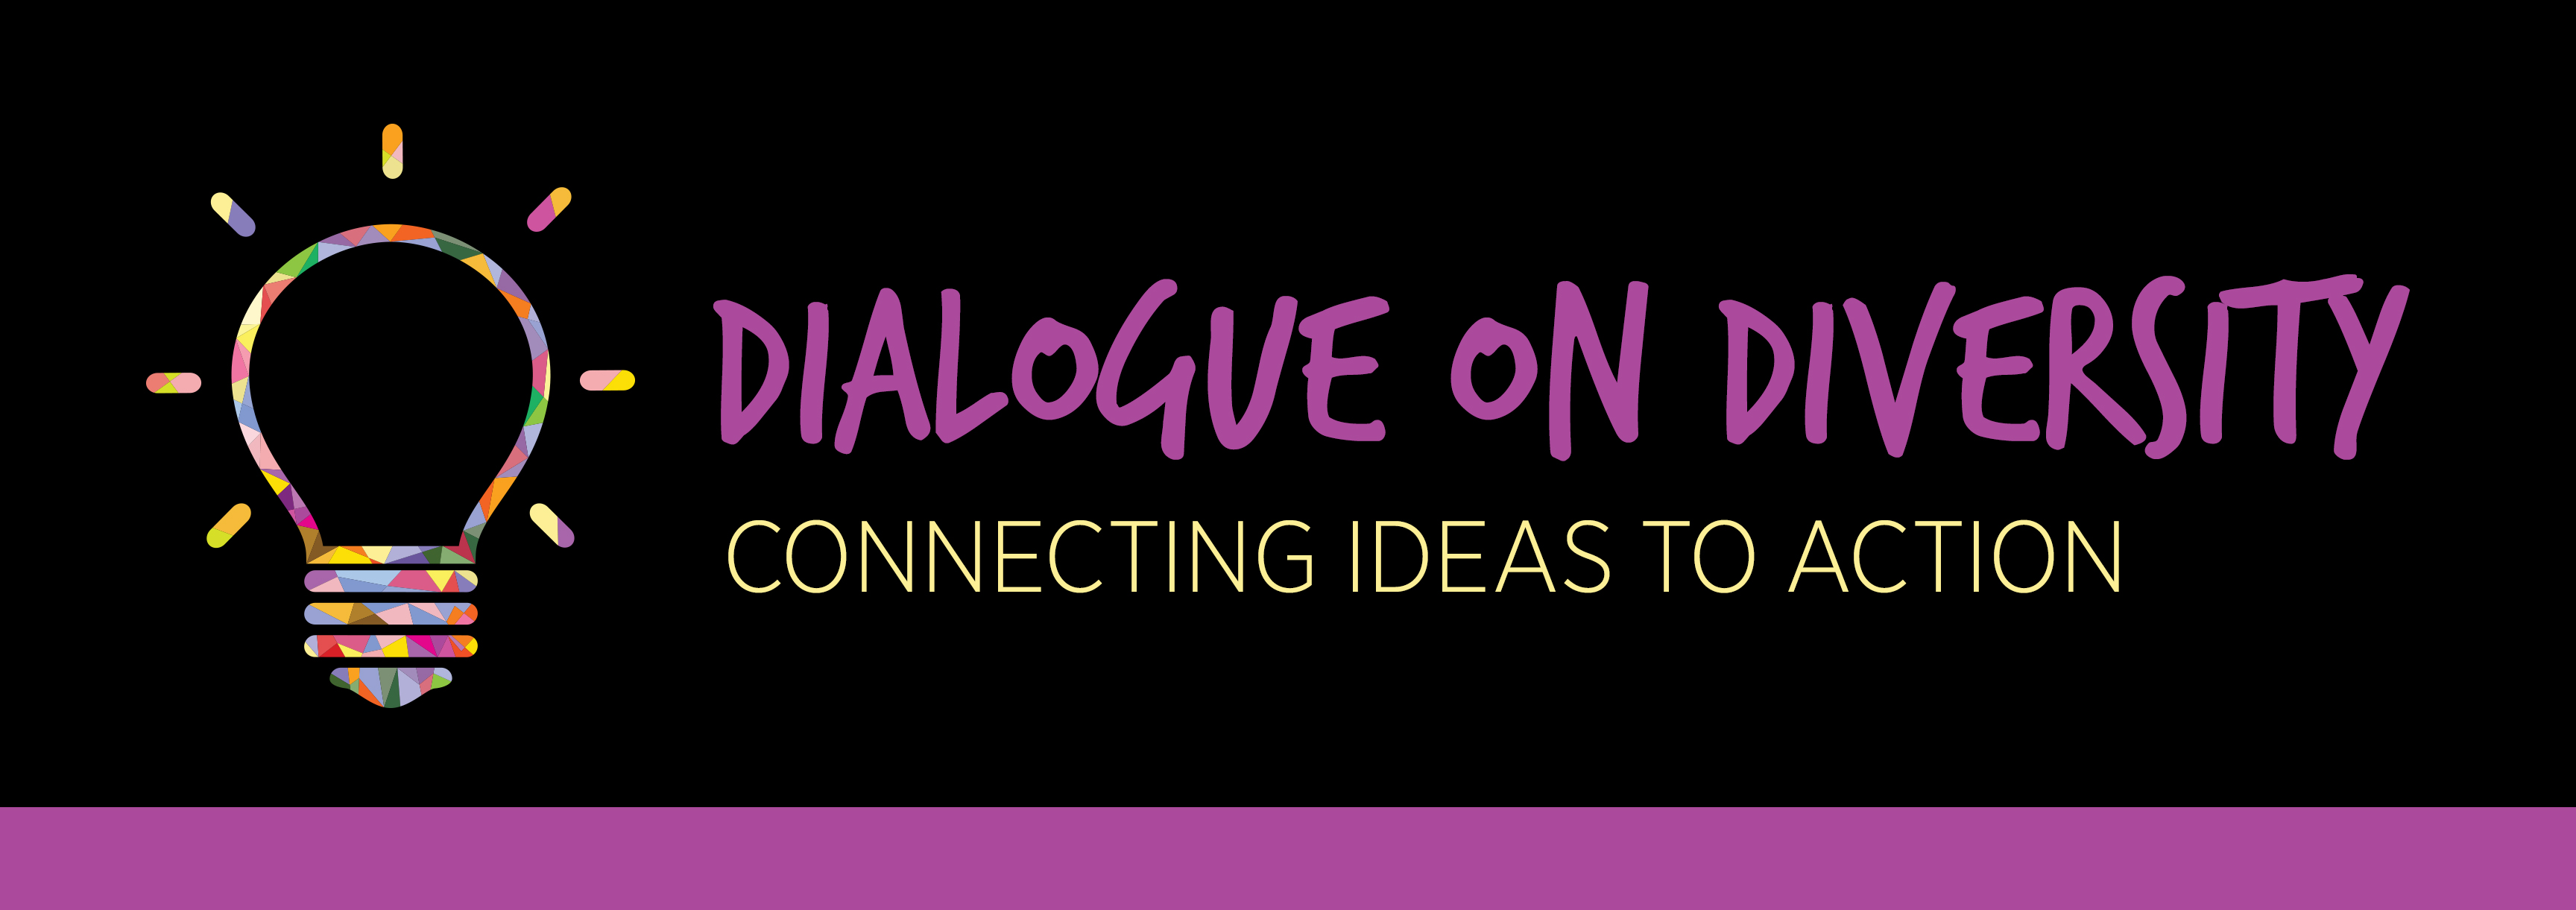 Dialogue on Diversity: Connecting Ideas to Action